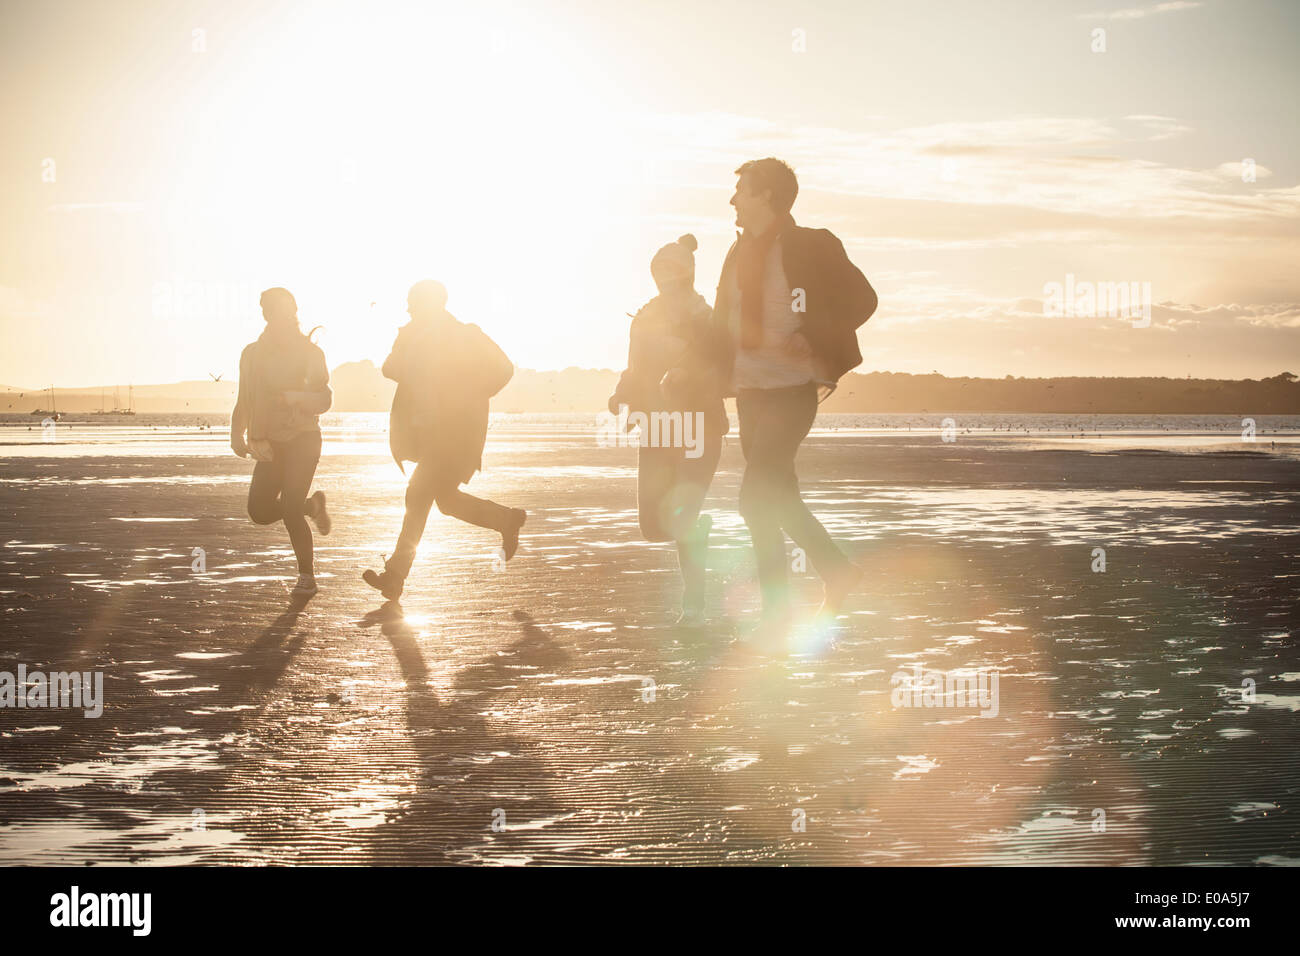 Adult friends racing each other on the beach - Stock Image